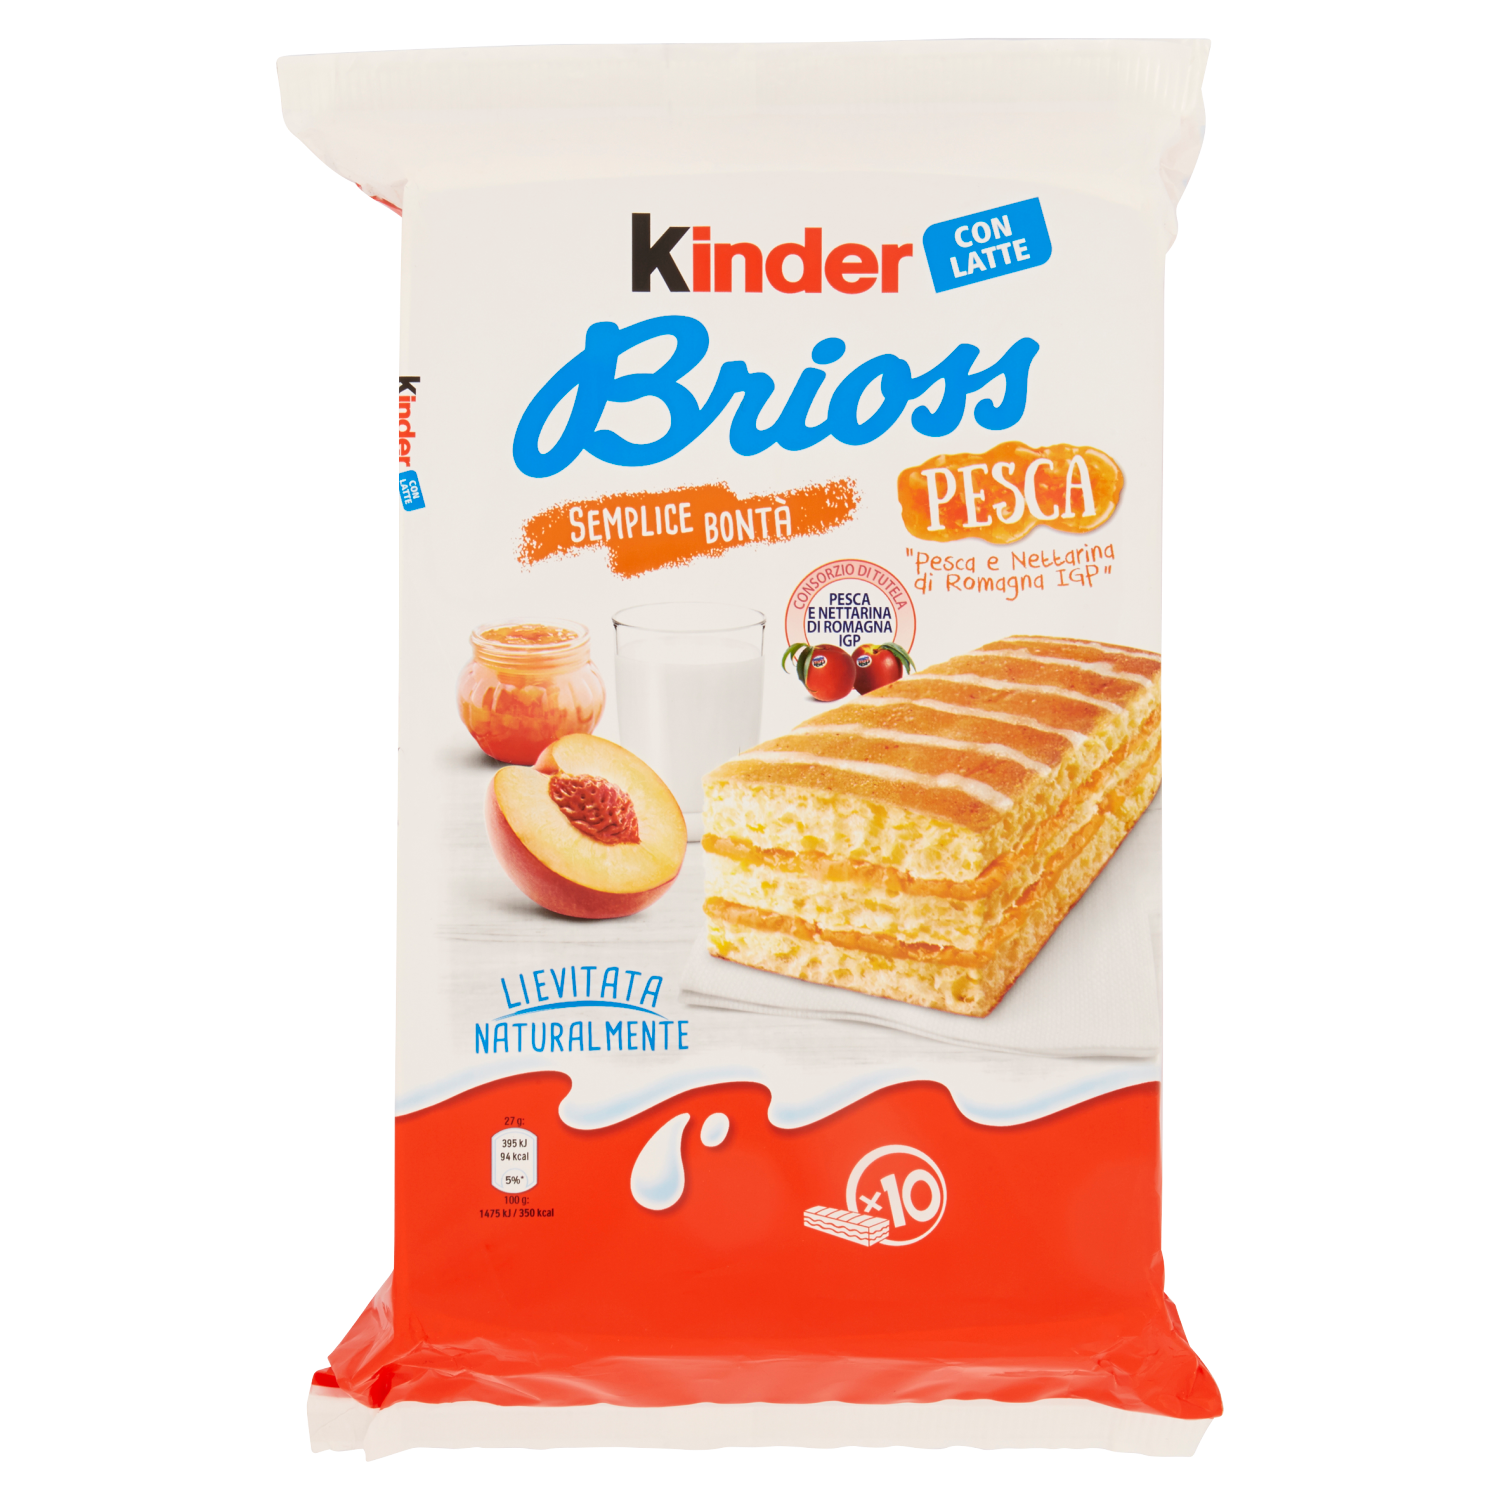 Kinder Brioss Pesca (10 snacks)